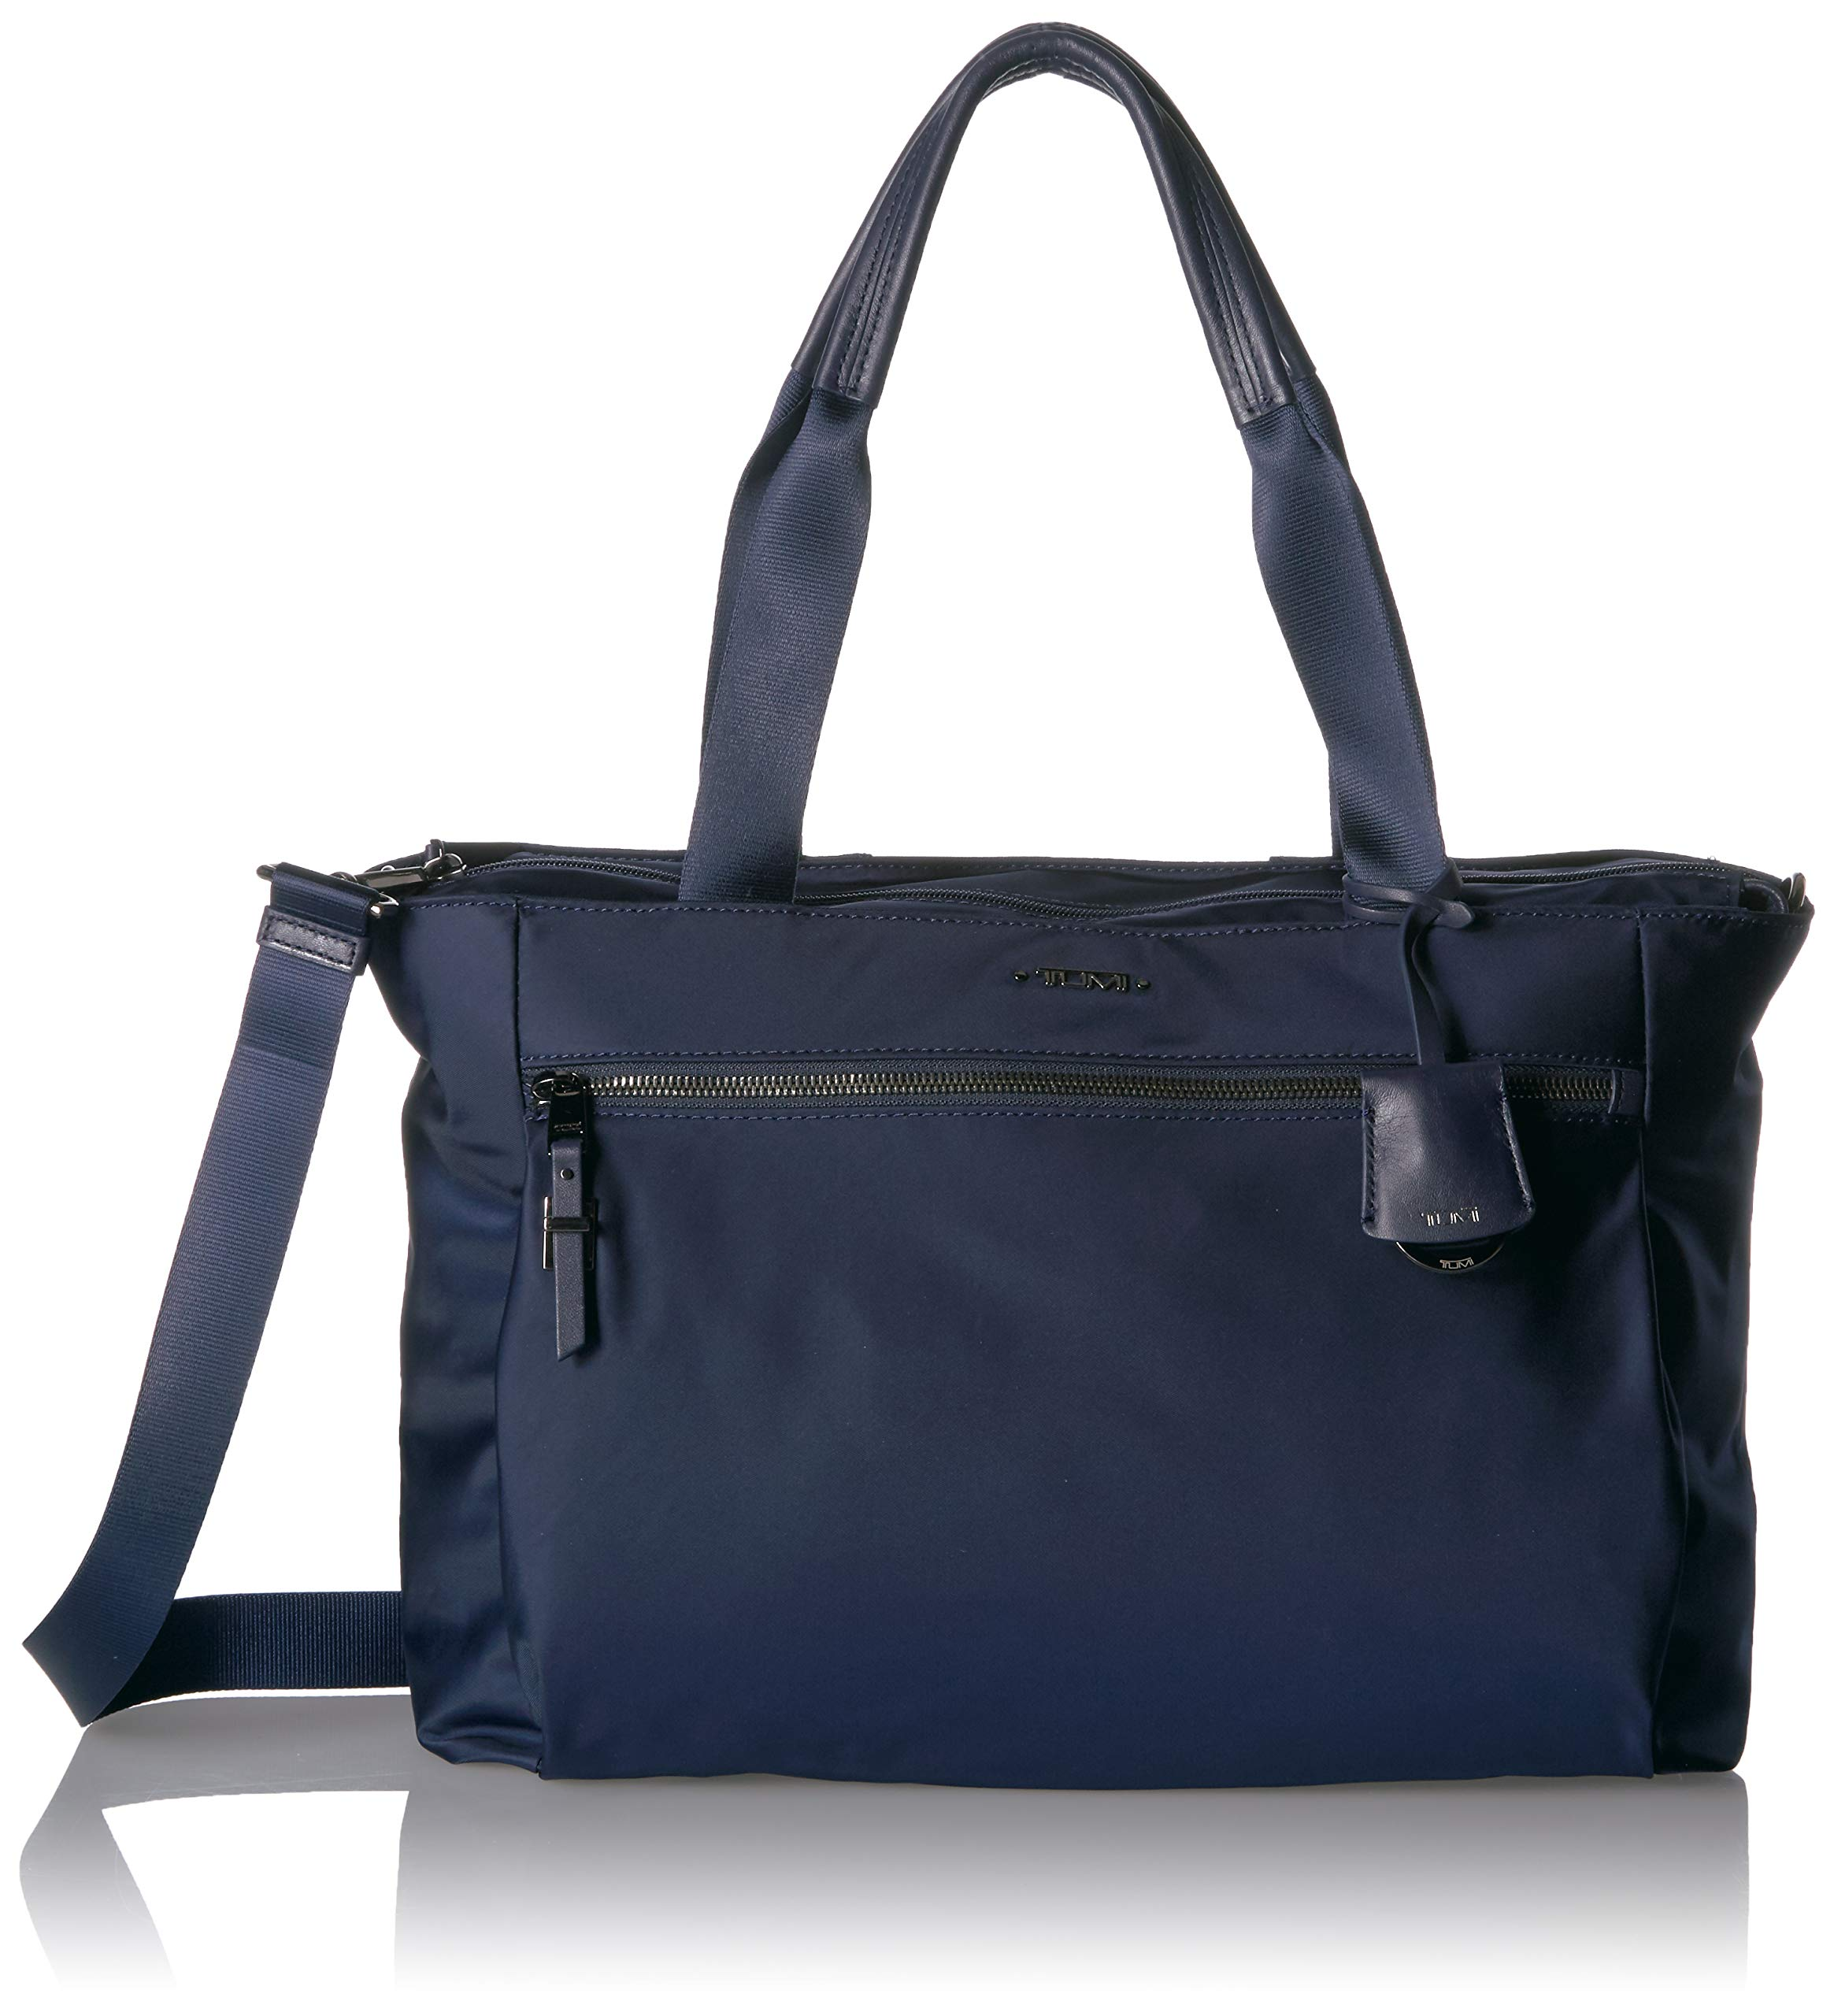 Tumi Women's Voyageur Mauren Tote Bag, Midnight, Blue, One Size